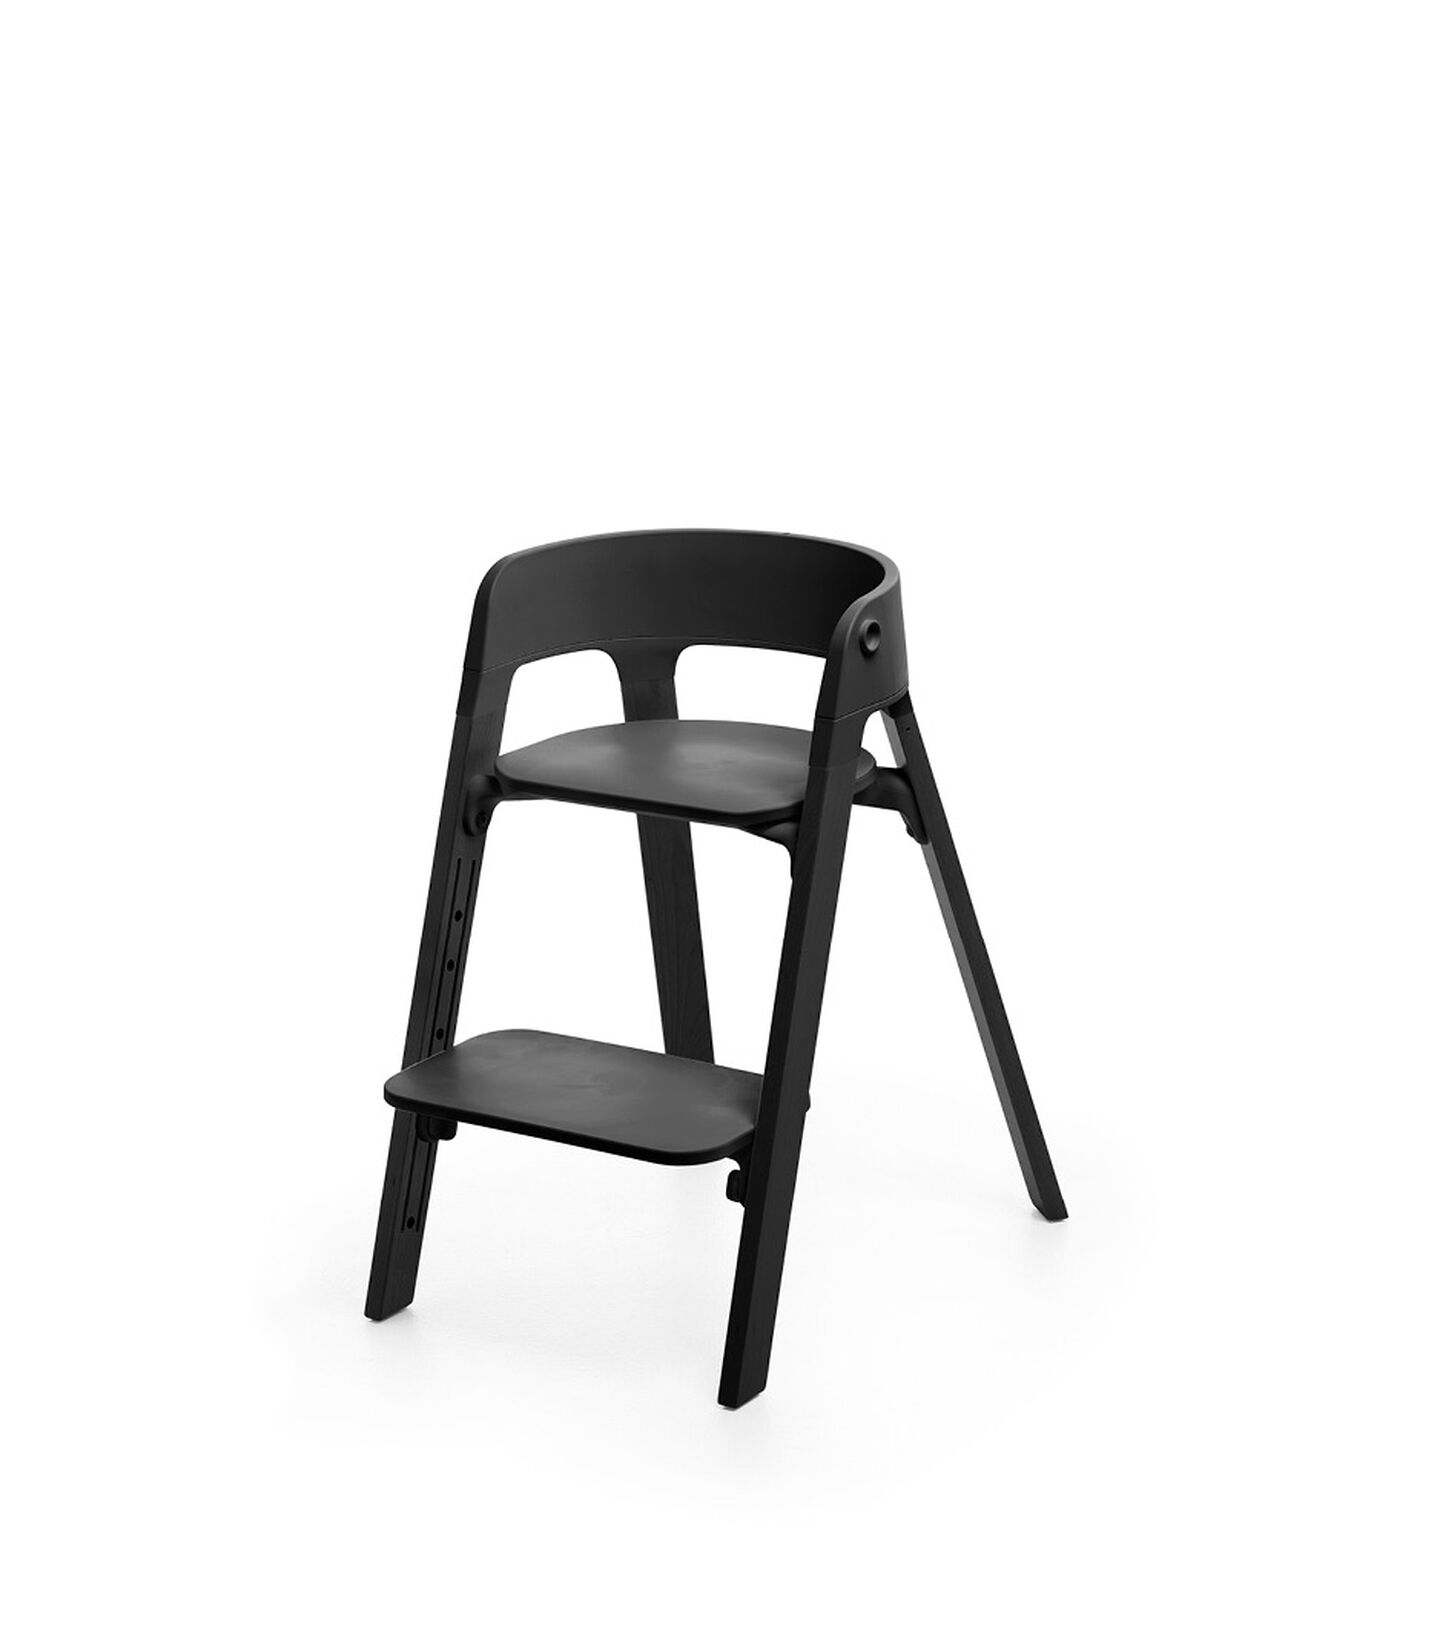 Stokke® Steps™ Chair, Black. Footrest low position. view 2